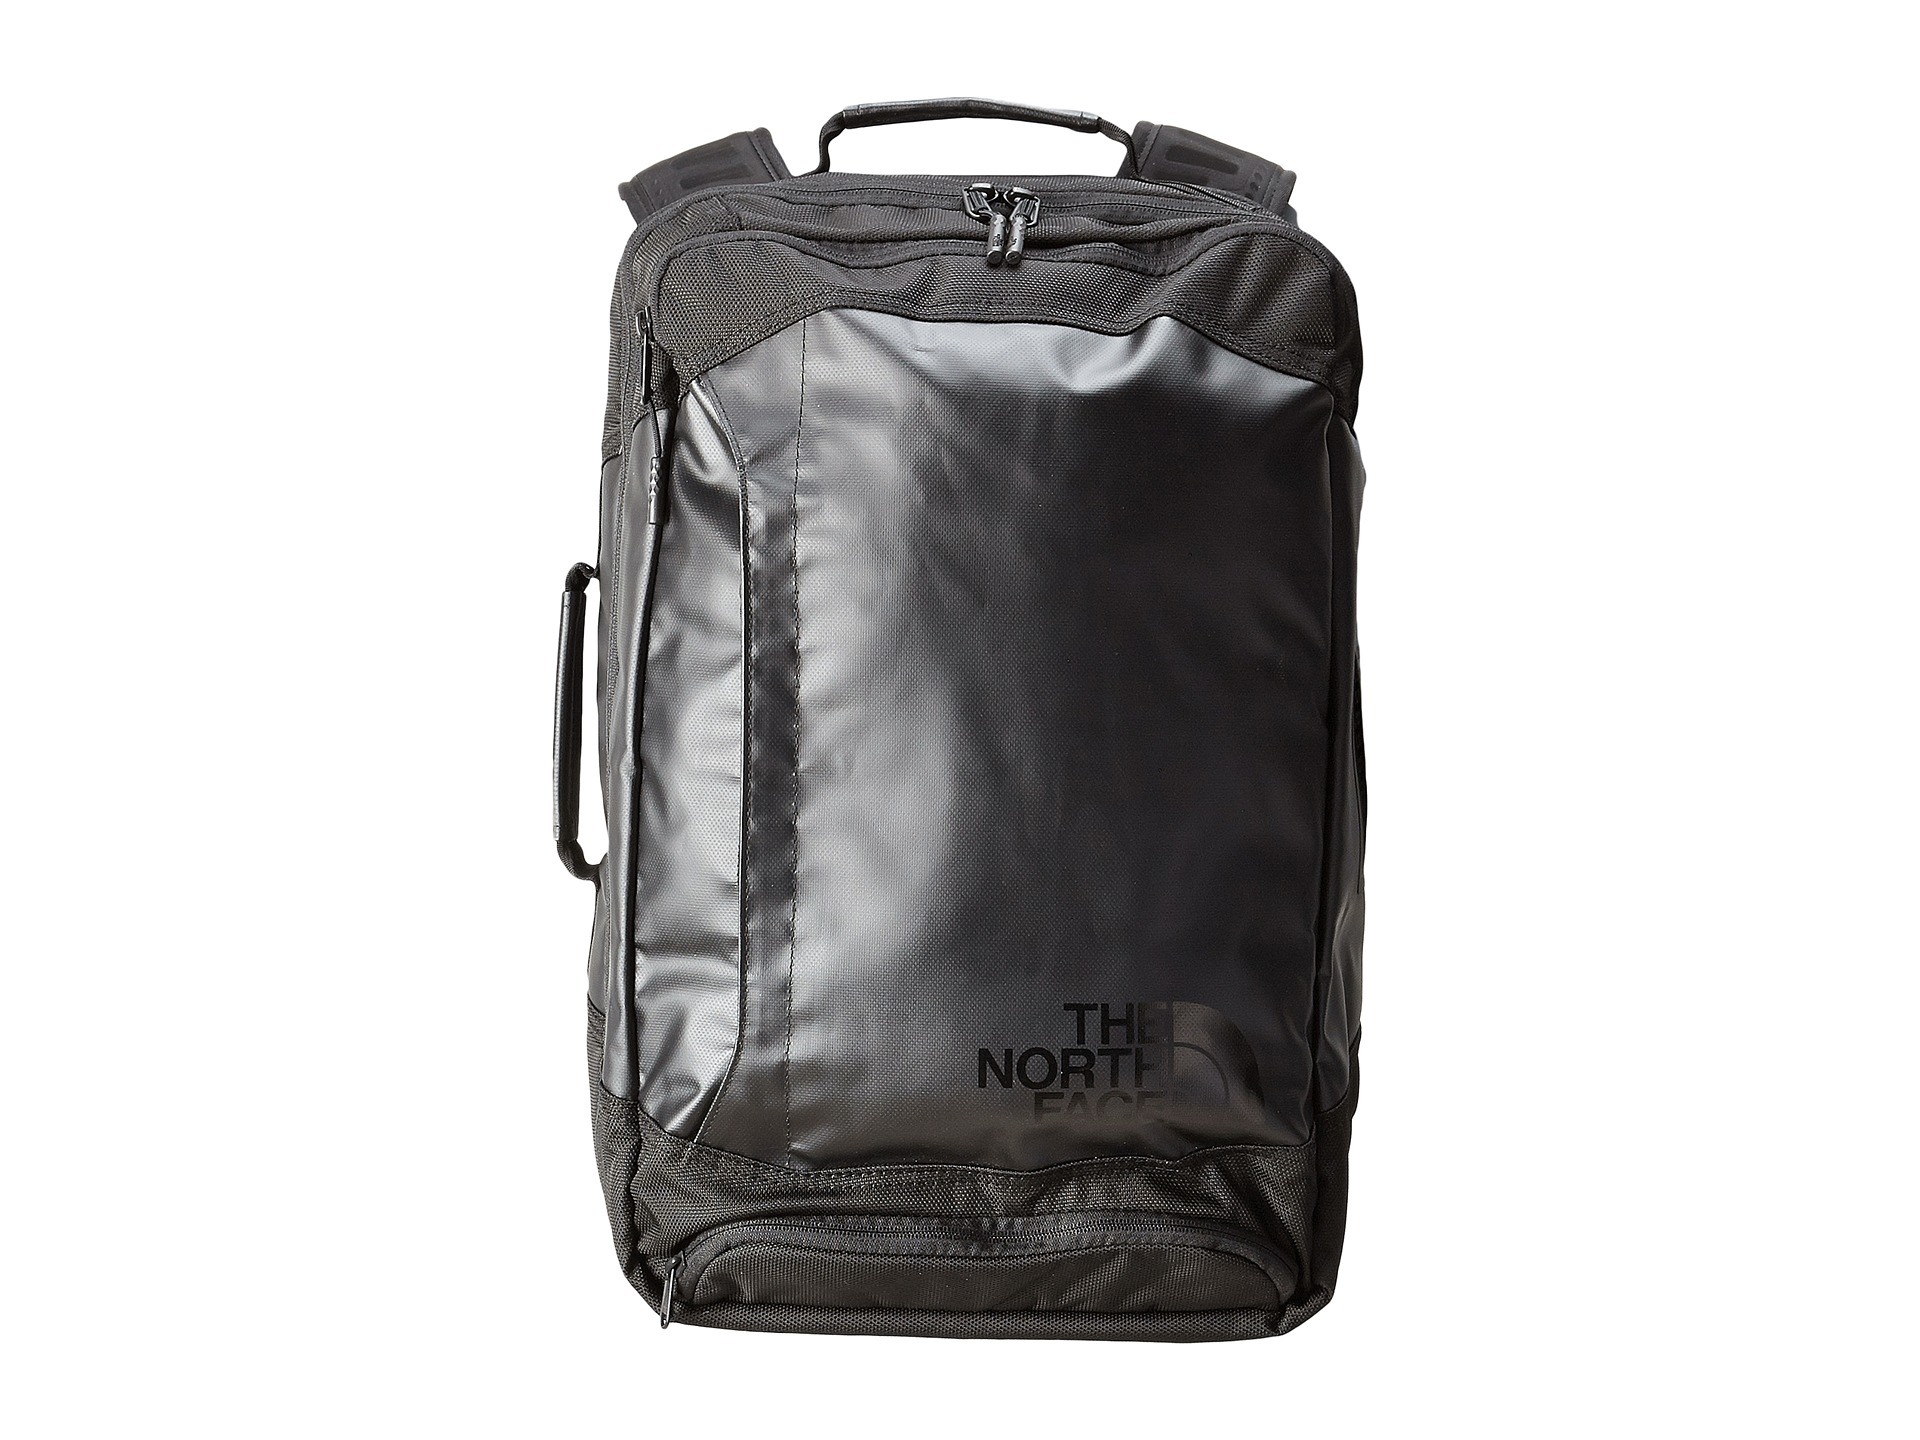 Find great deals on eBay for north face broken zipper. Shop with confidence.